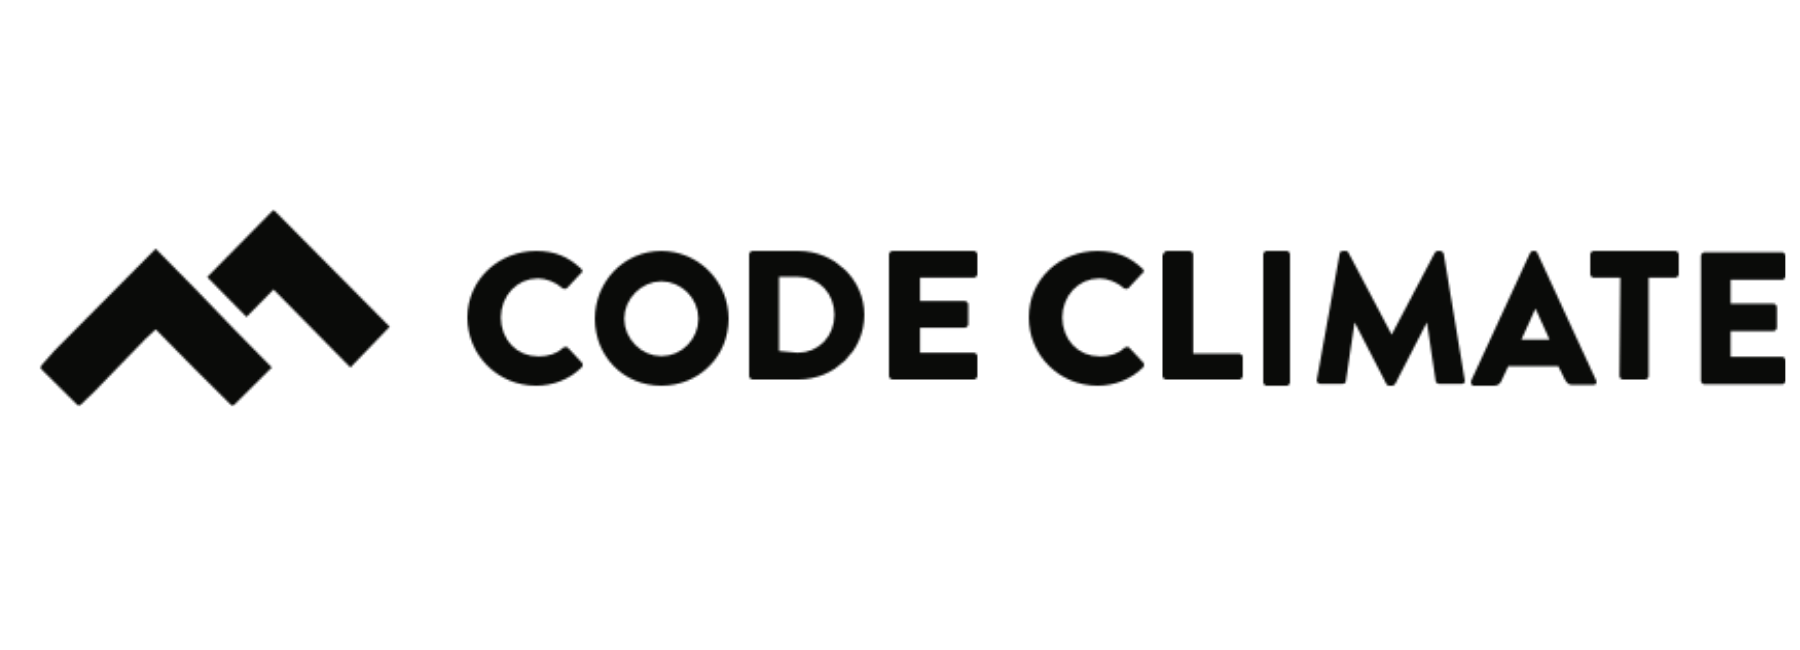 /Code%20Climate